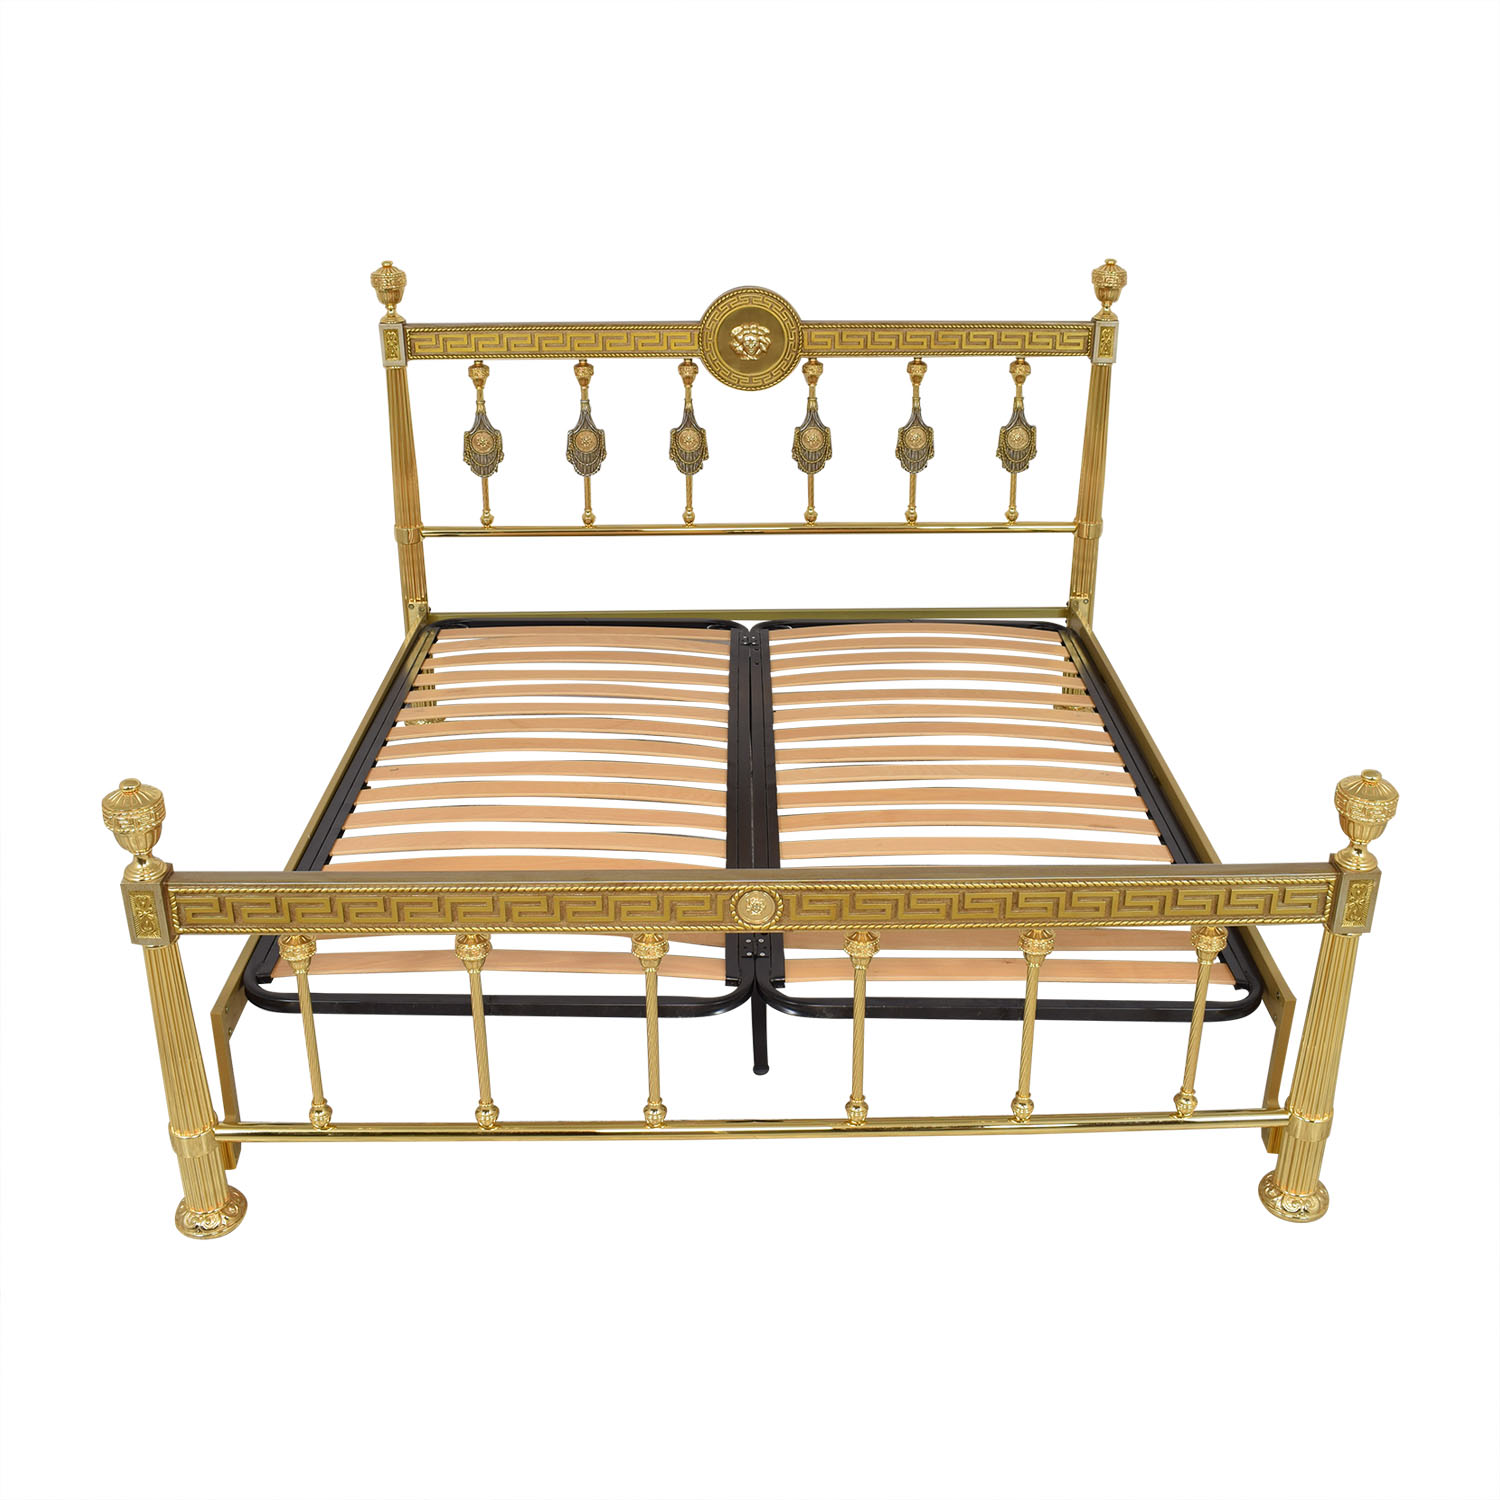 Versace Versace King Bed Frame price